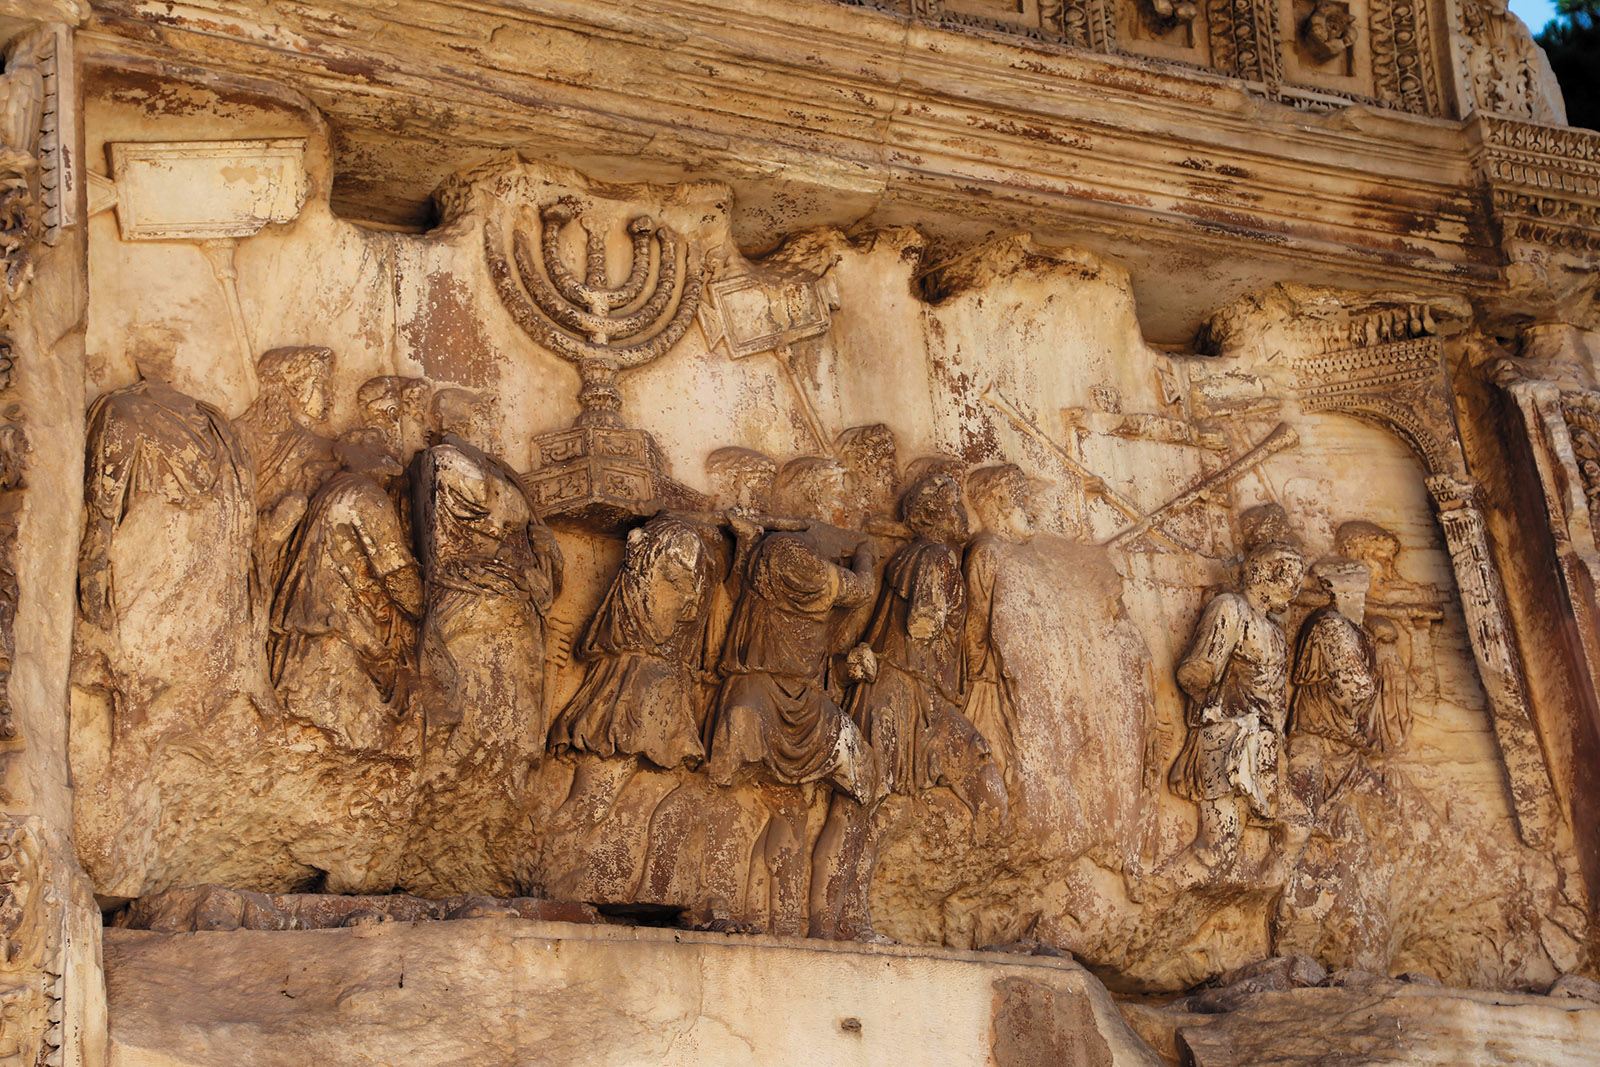 A bas-relief depicting the sack of Jerusalem on the Arch of Titus in the Roman Forum